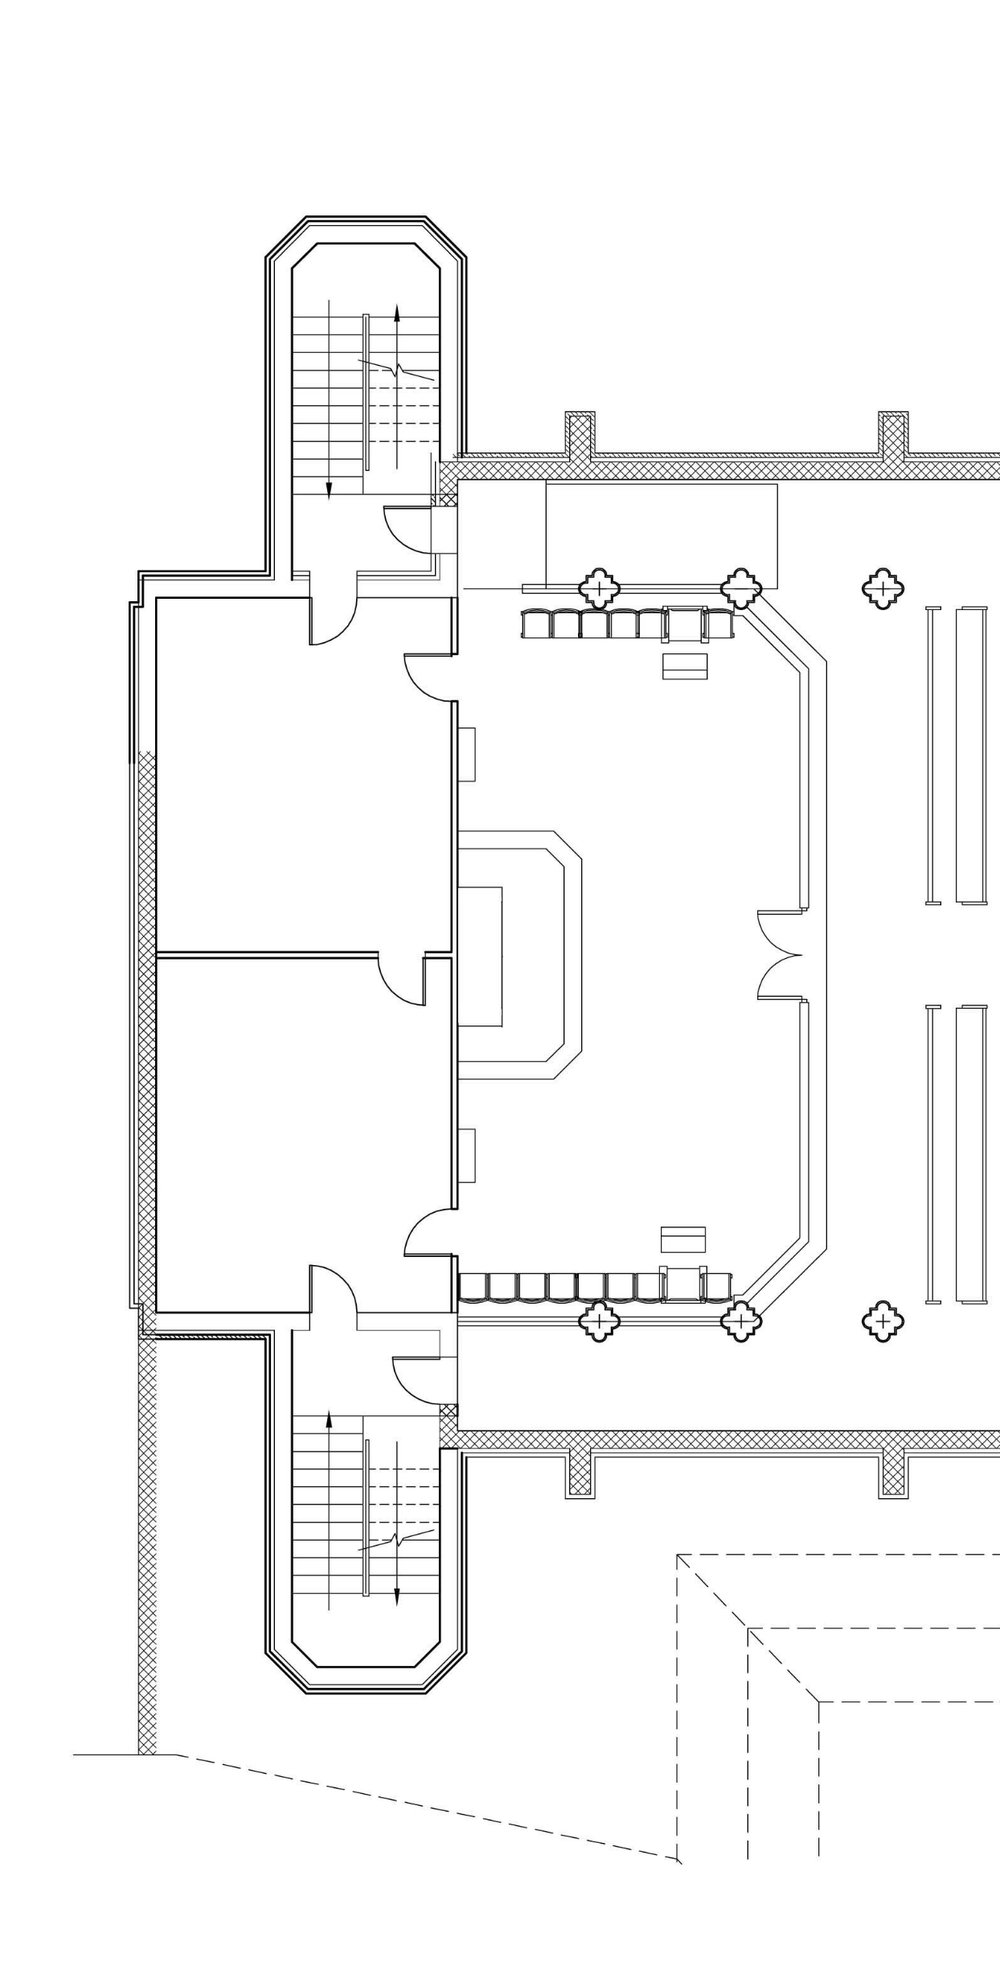 cropped floor plan.jpg